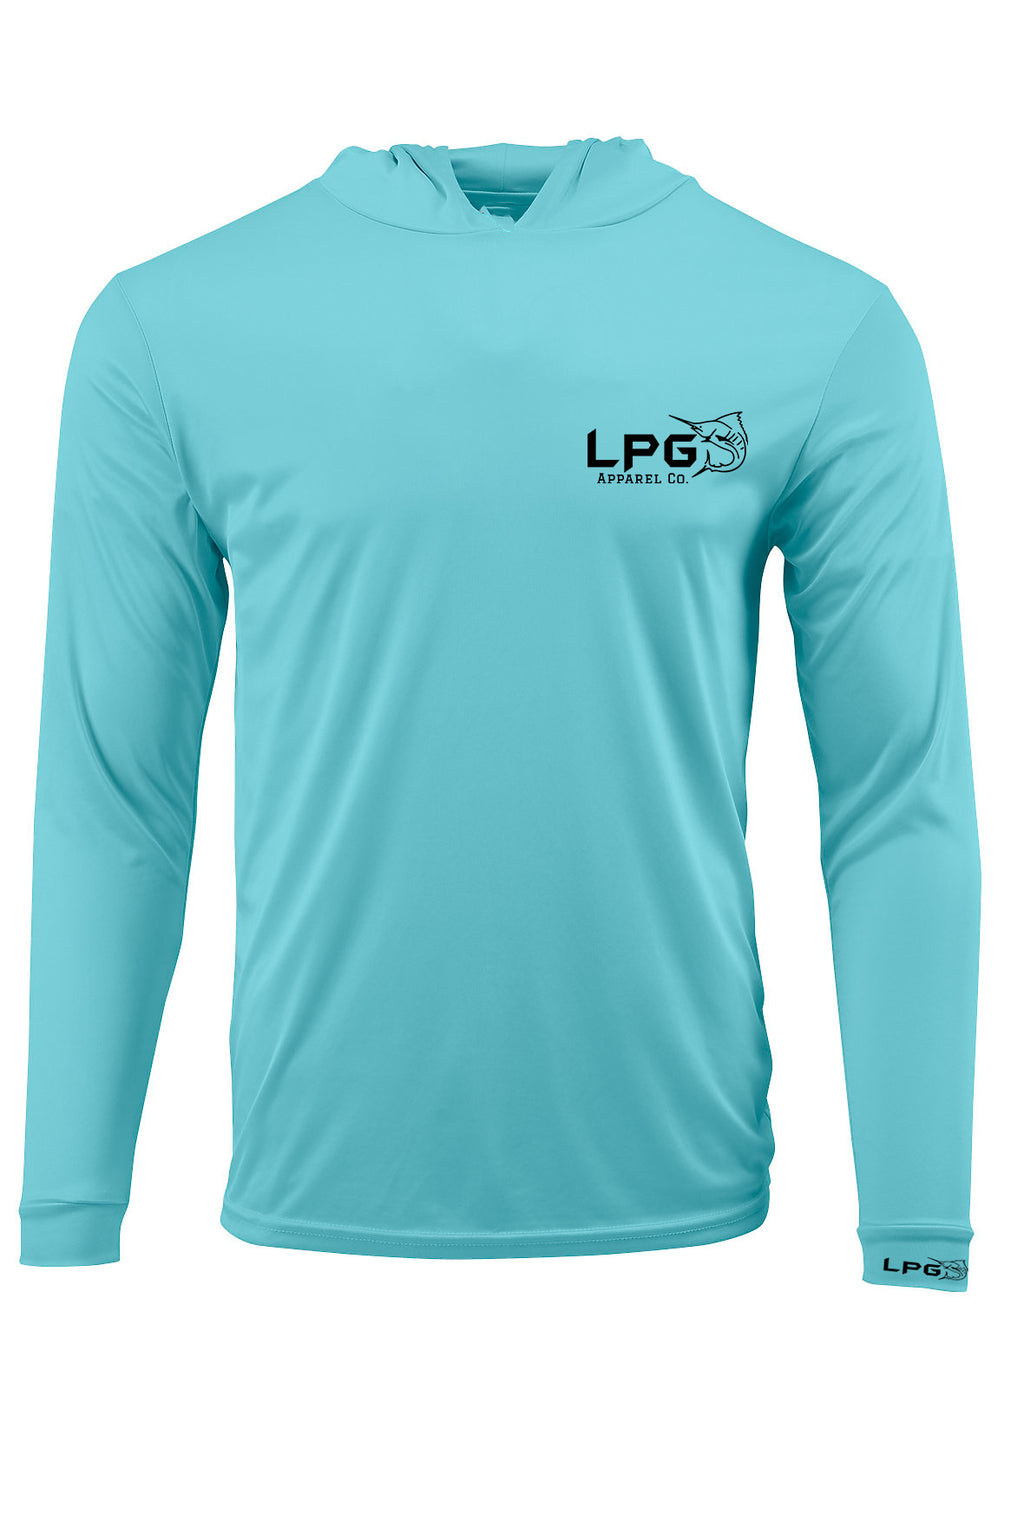 LPG Apparel Co. Performance Fishing Hoodie UPF 50+ Dri-Fit UV Protection Men & Women Long Sleeve T-Shirt - Lobo Performance Gear